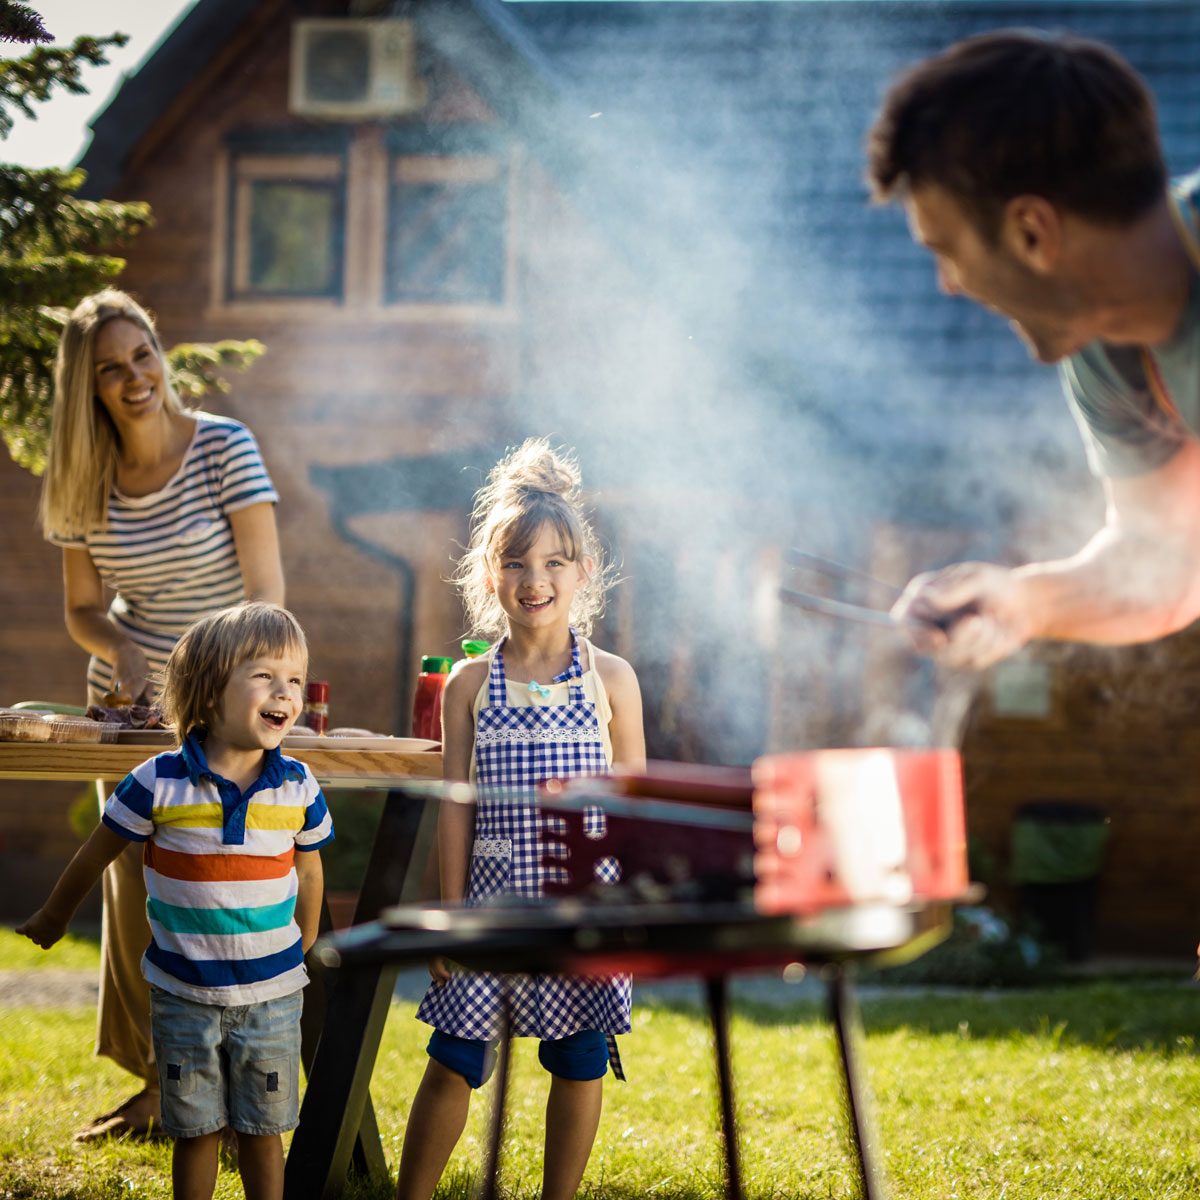 Family grilling outside at picnic table